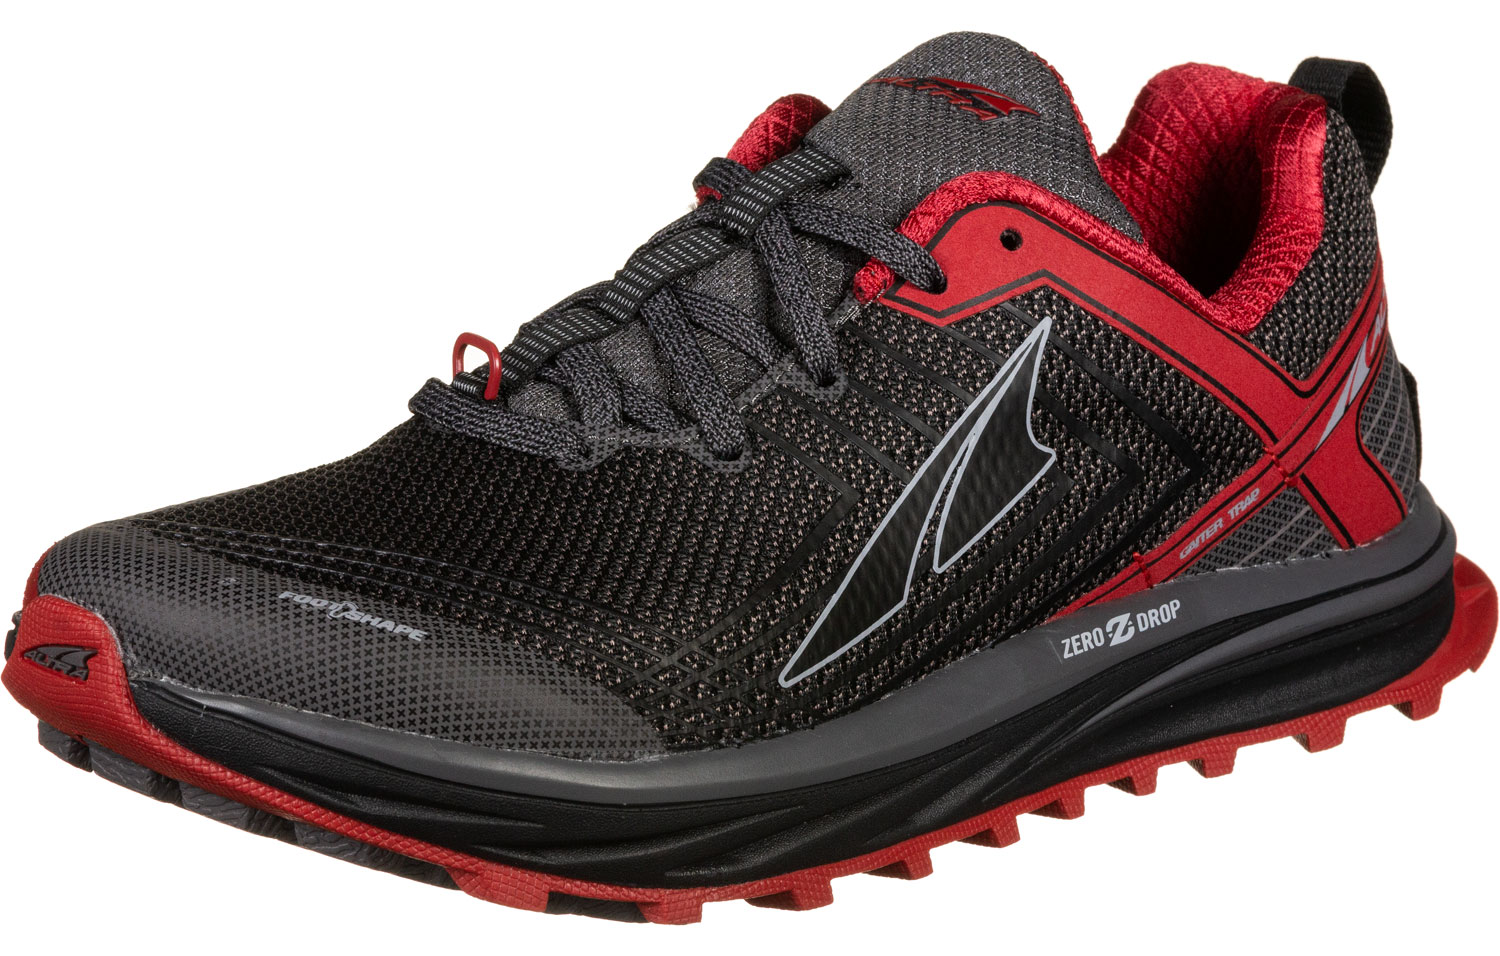 Altra Timp 1.5: A Review - After 500km in the new Altra Timp 1.5's, I think it's high time for a review.